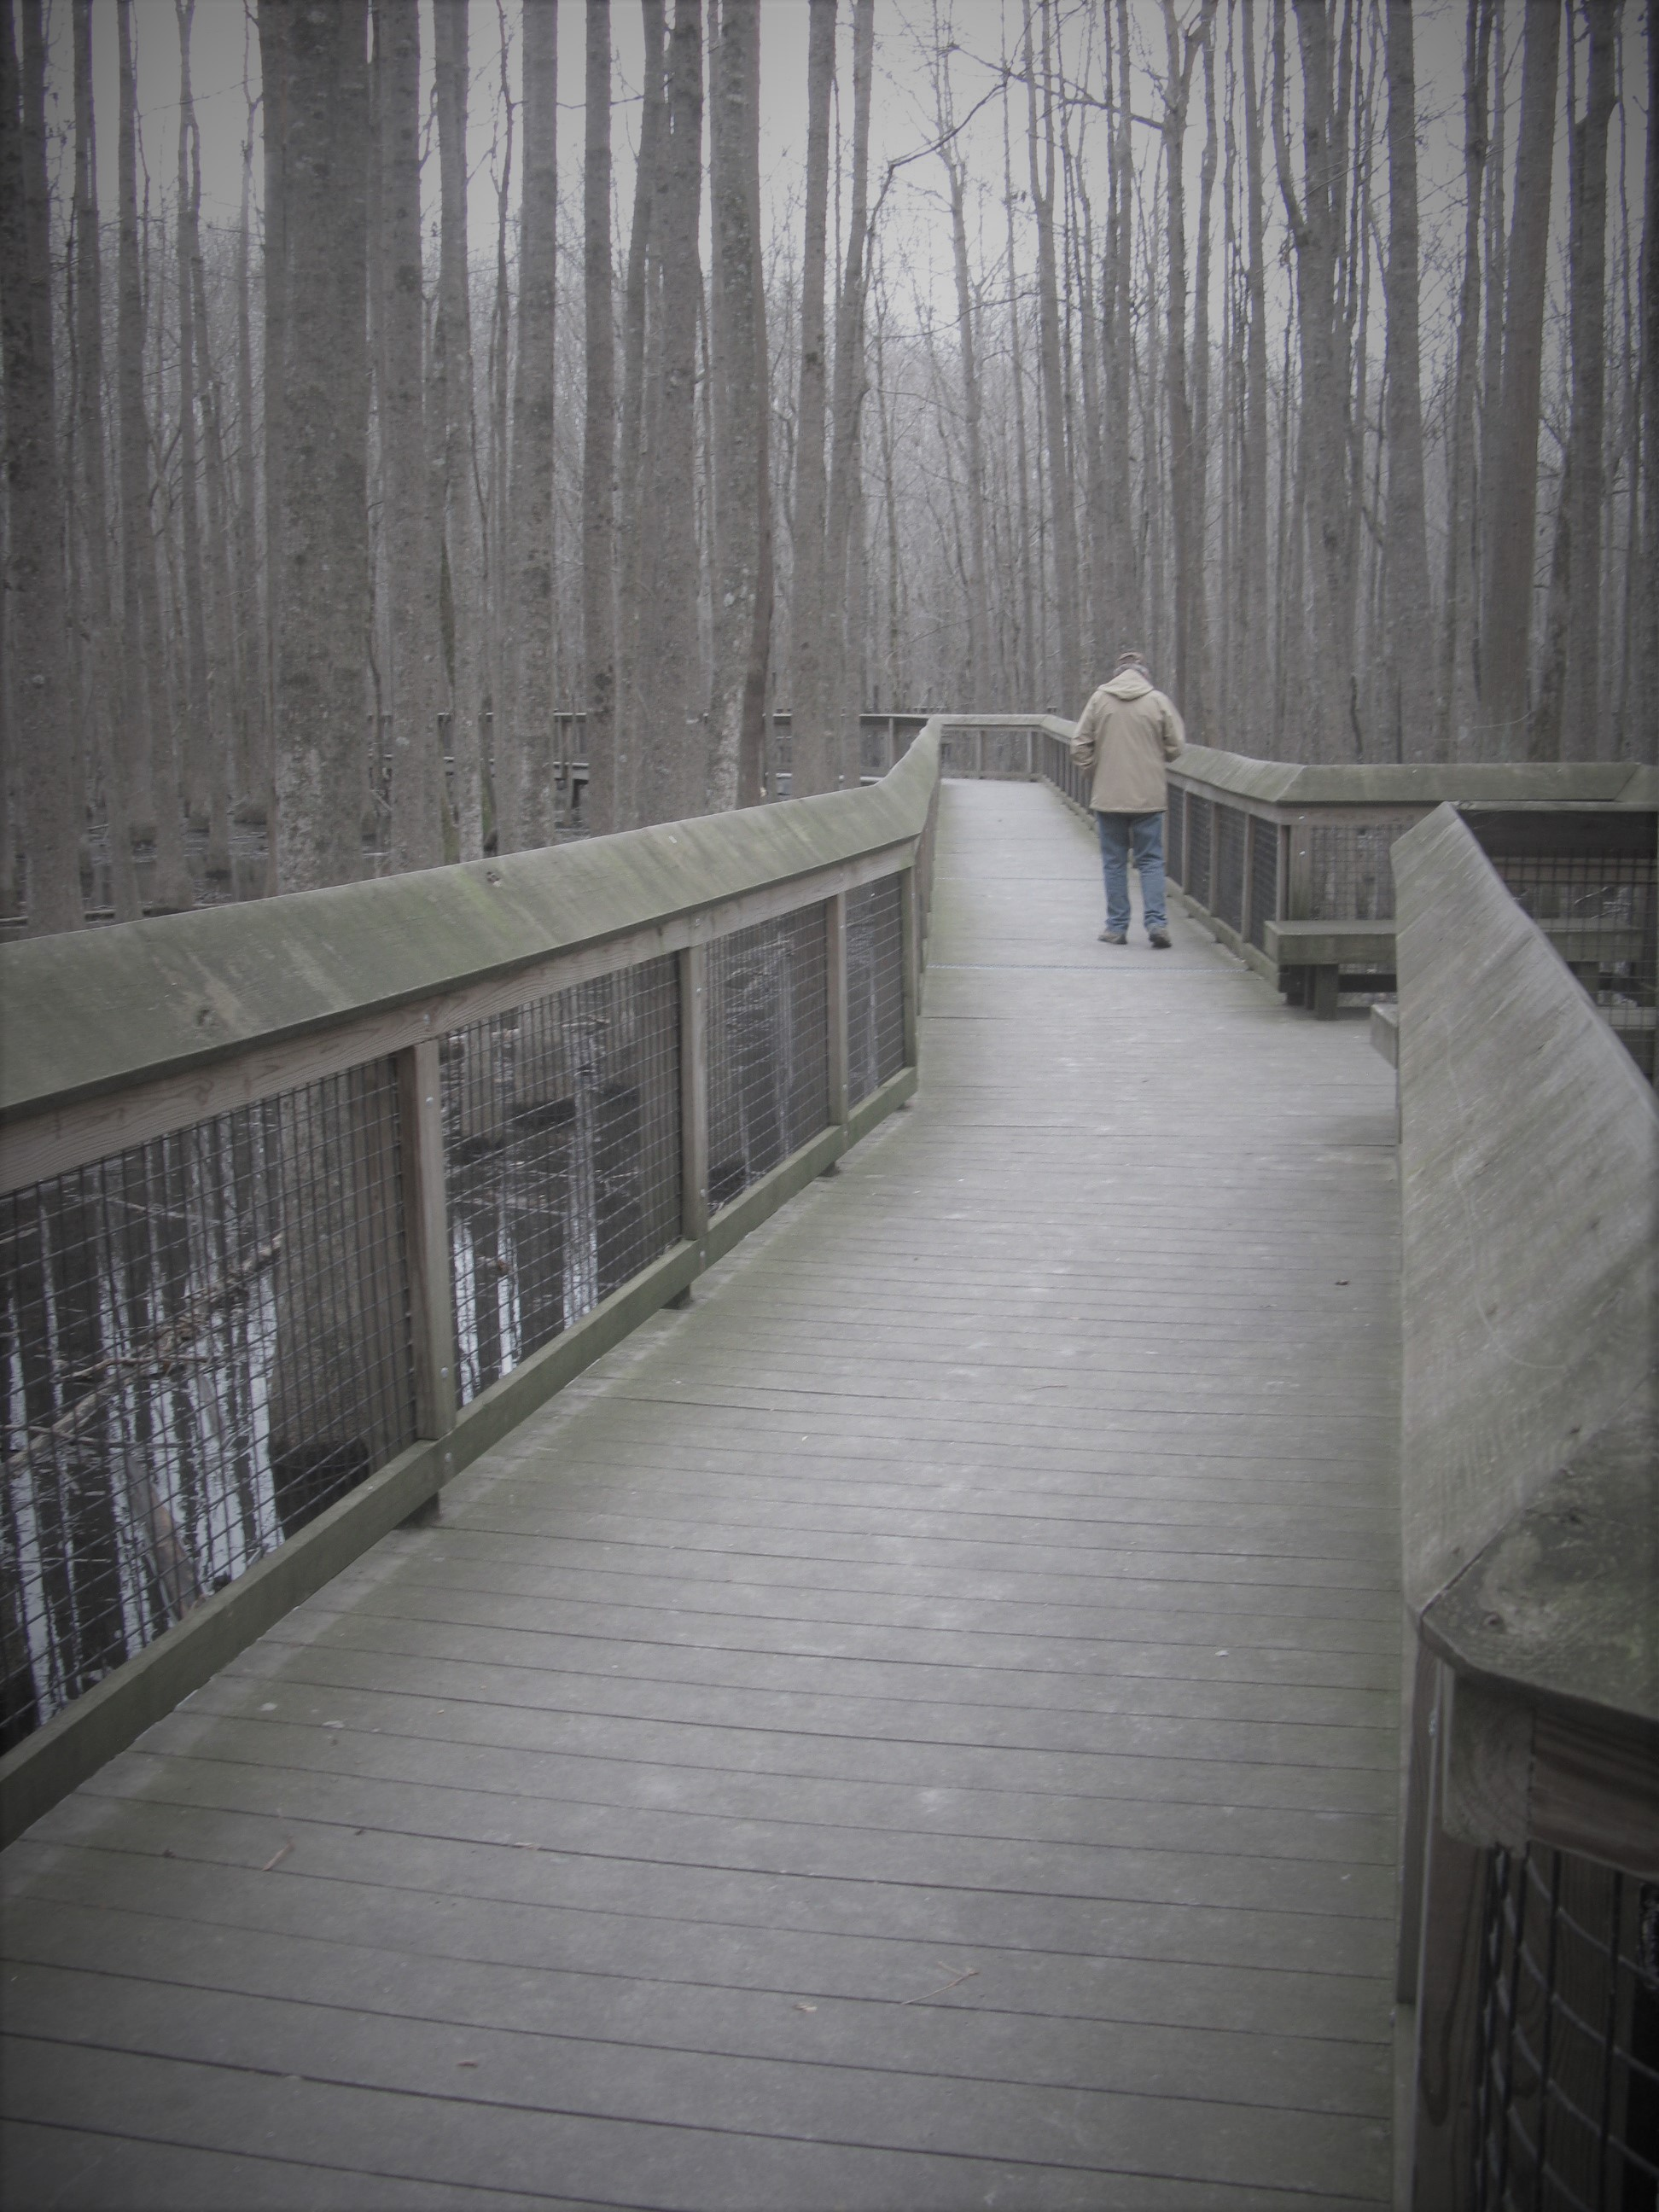 a man walks on the boardwalk in winter, surrounded by leafless trees and water below the boardwalk